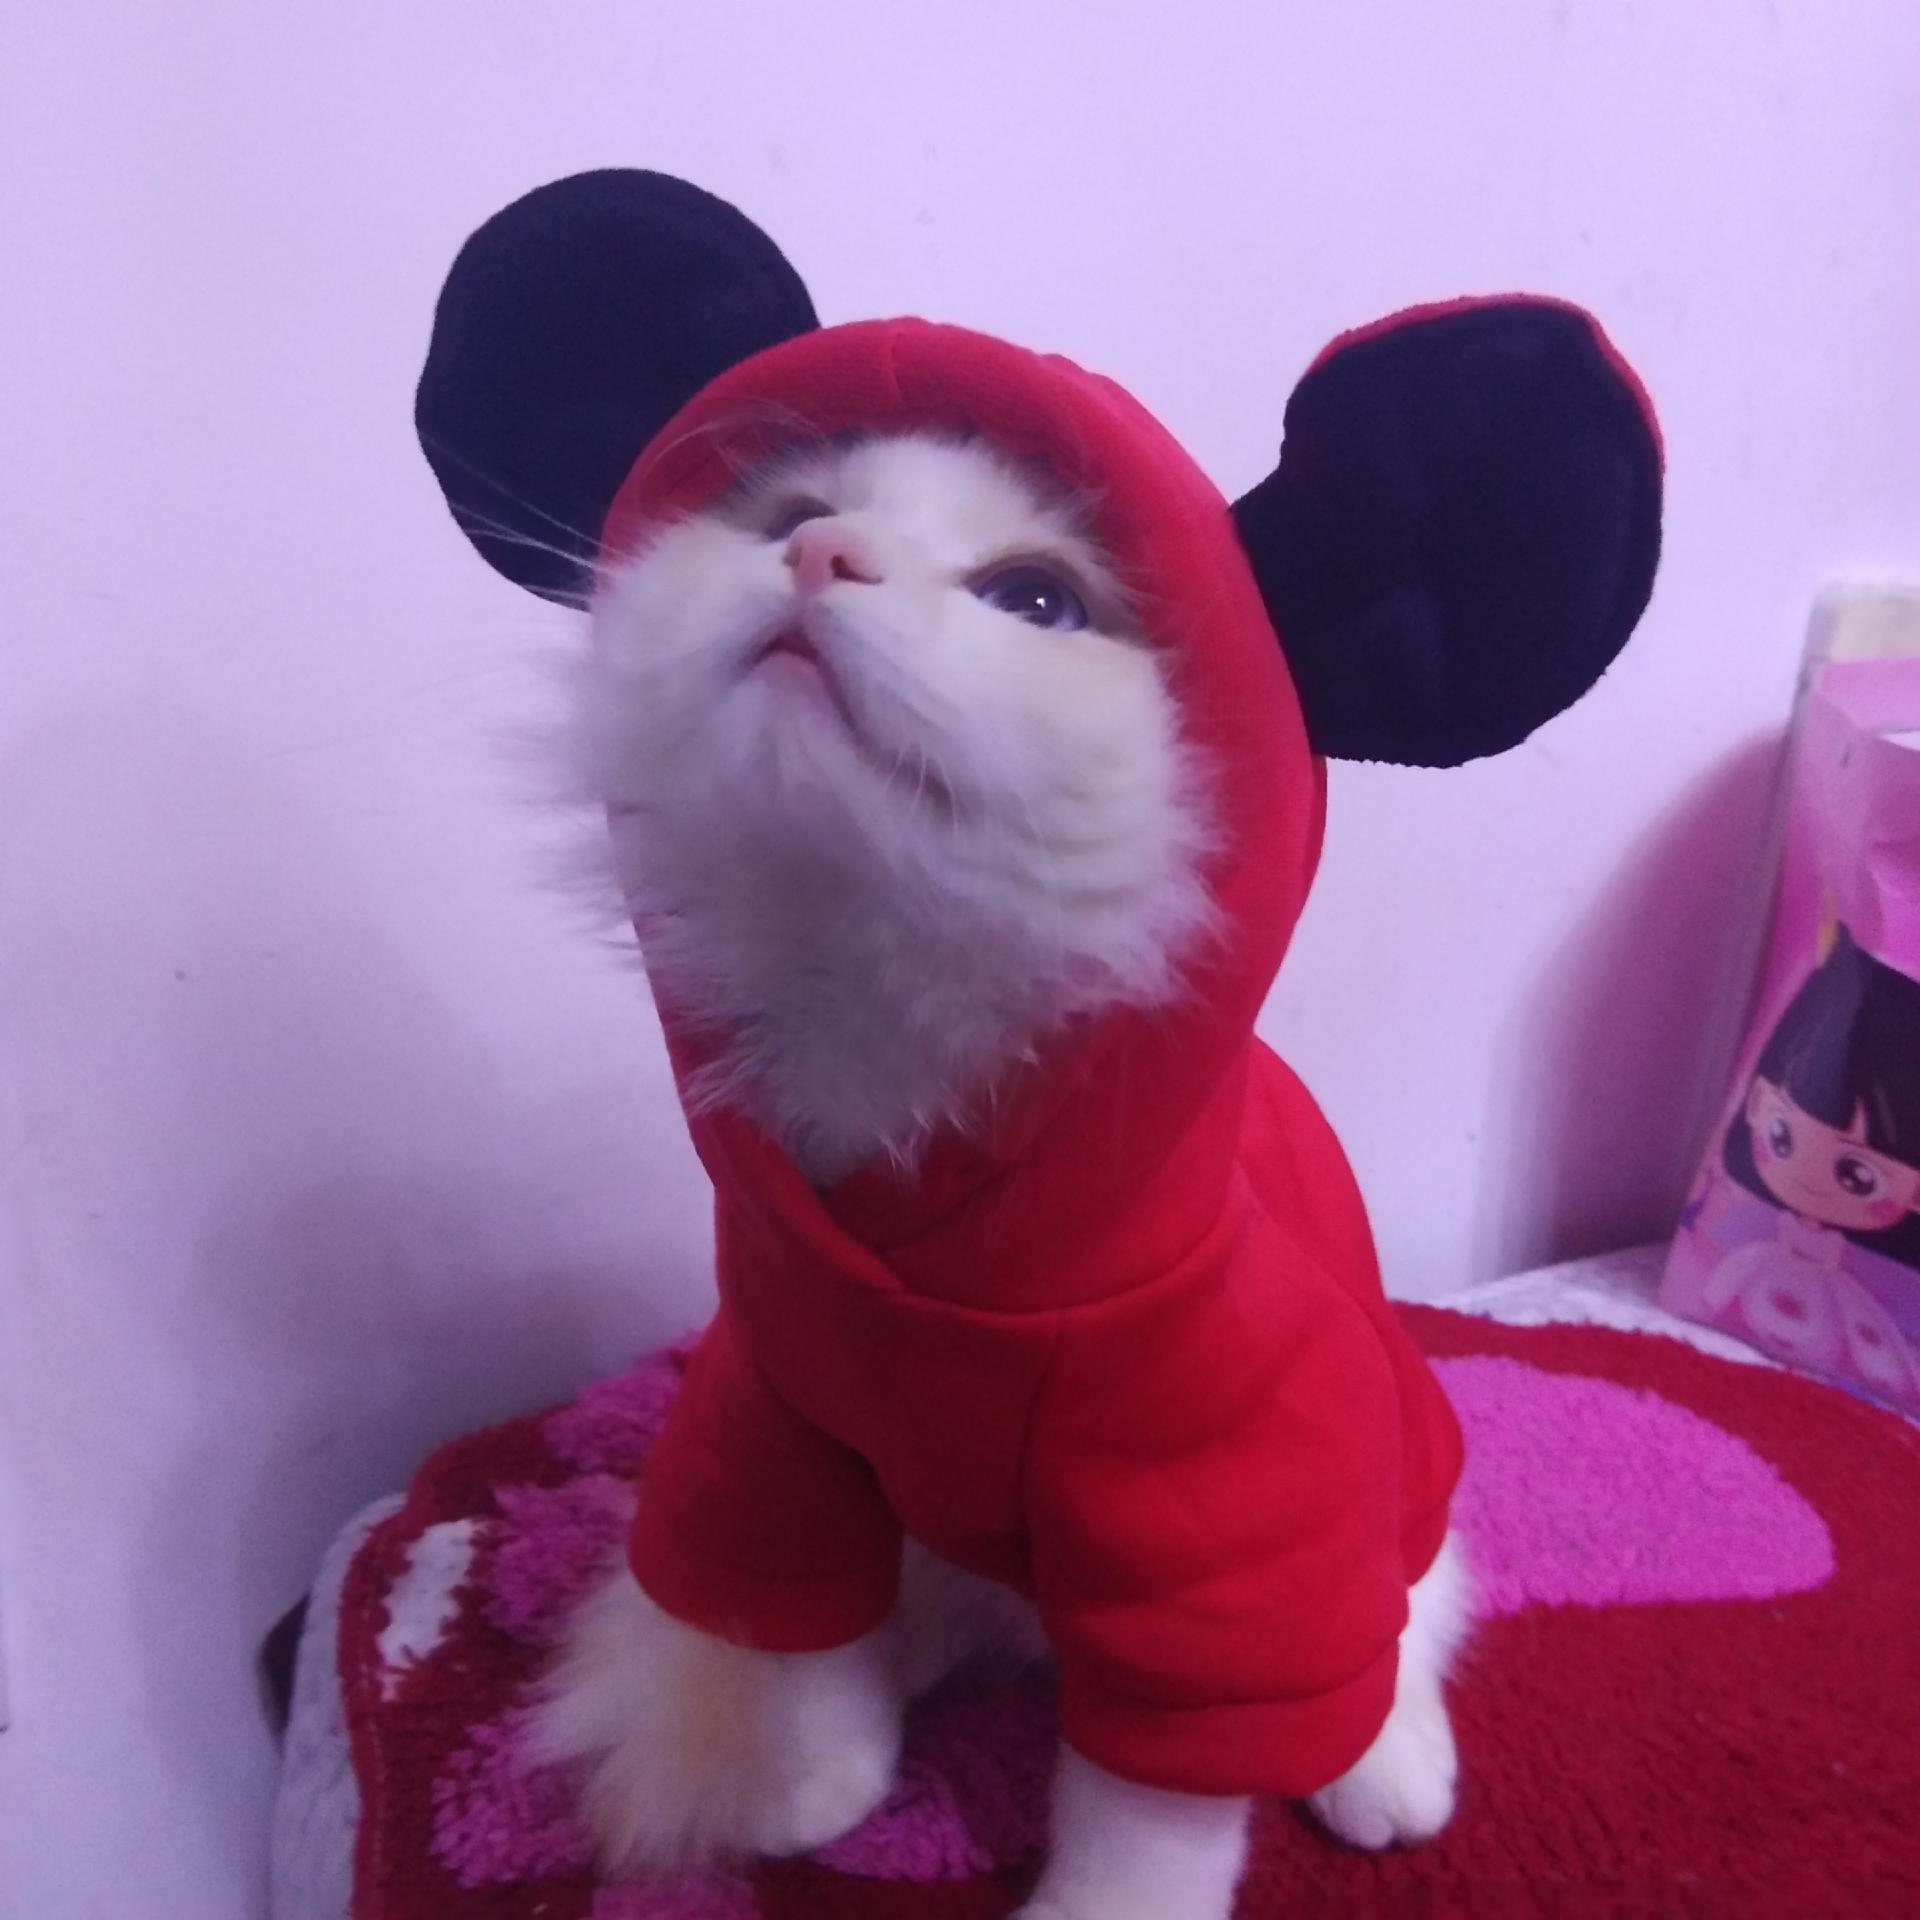 Mickey Hoodies Cat Clothes Security Pet Coats Jacket Cute Puppy Kitten Minnie Little Cat Outfit Chihuahua Yorkshire Clothing 2XL 4